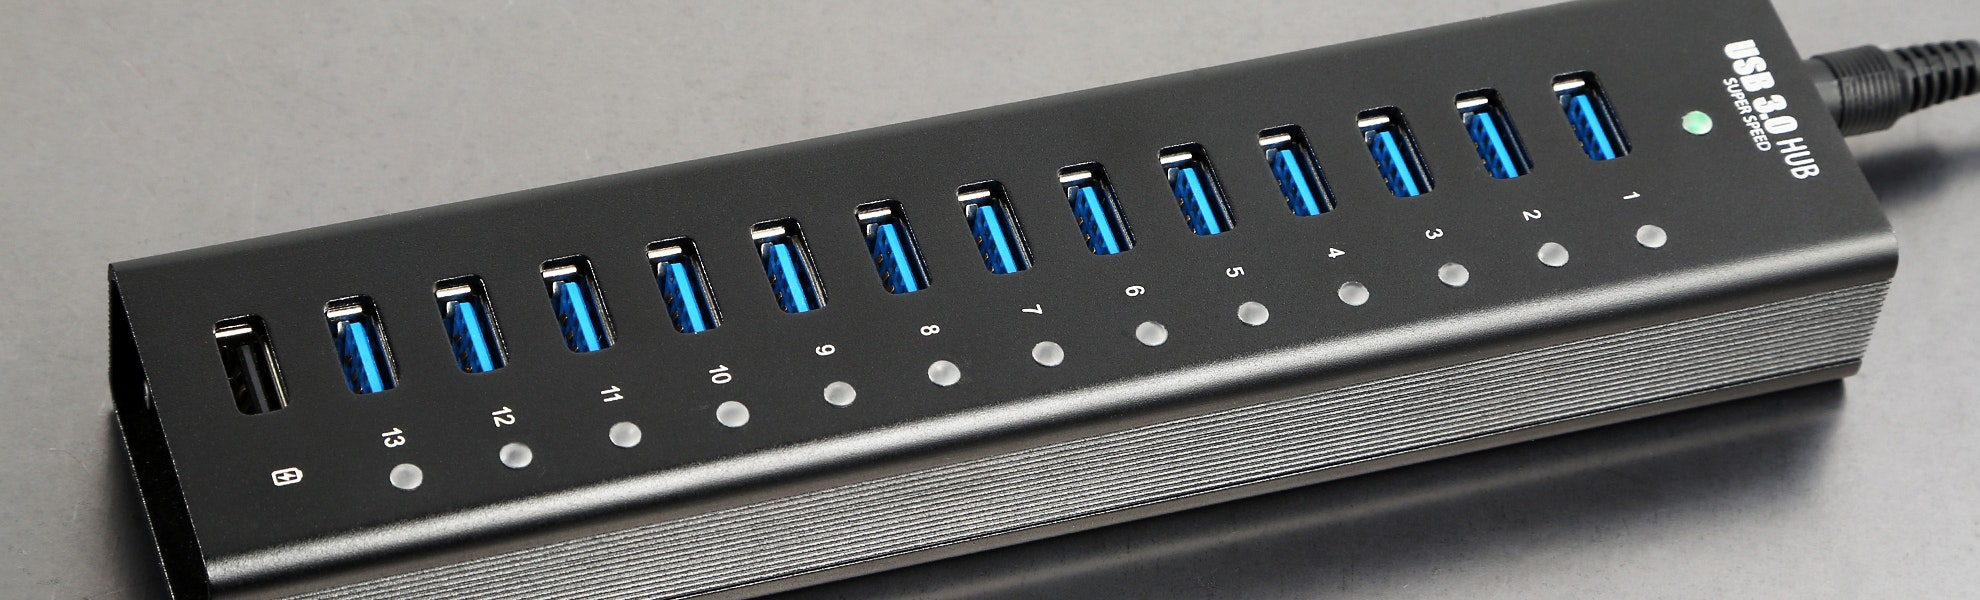 Juiced 13 + 1 USB 3.0 ALUMINUM HUB